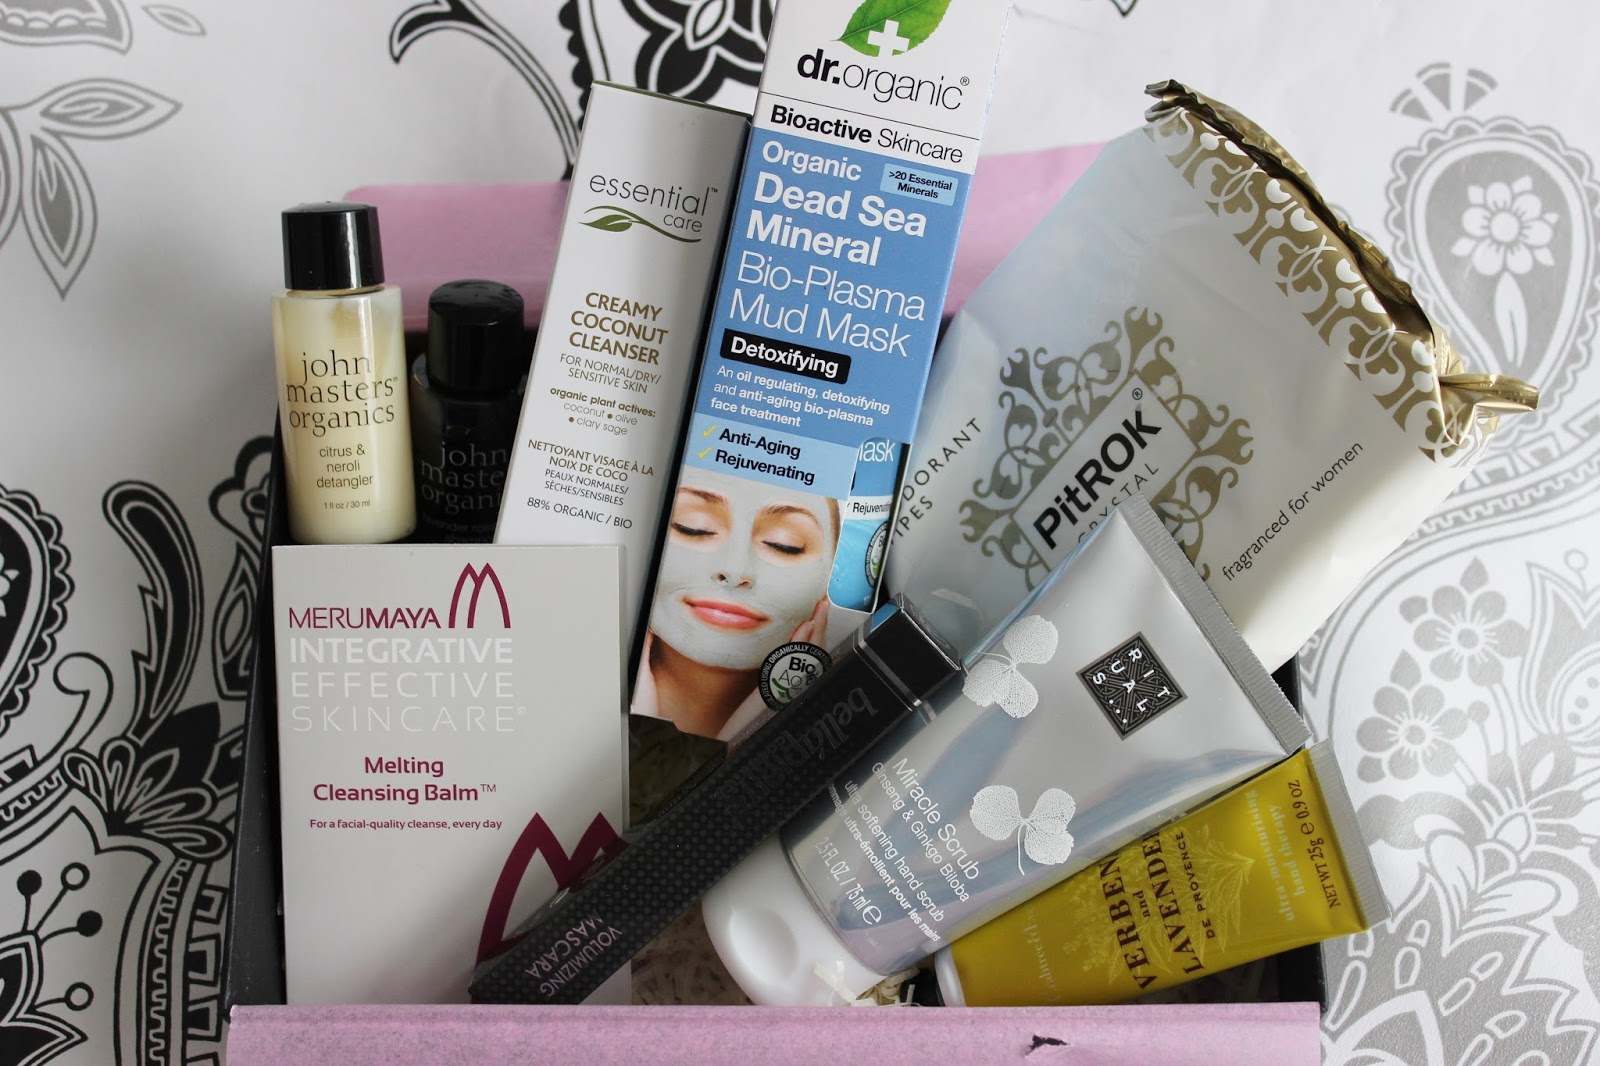 Latest in Beauty Beauty Bible loves box contents